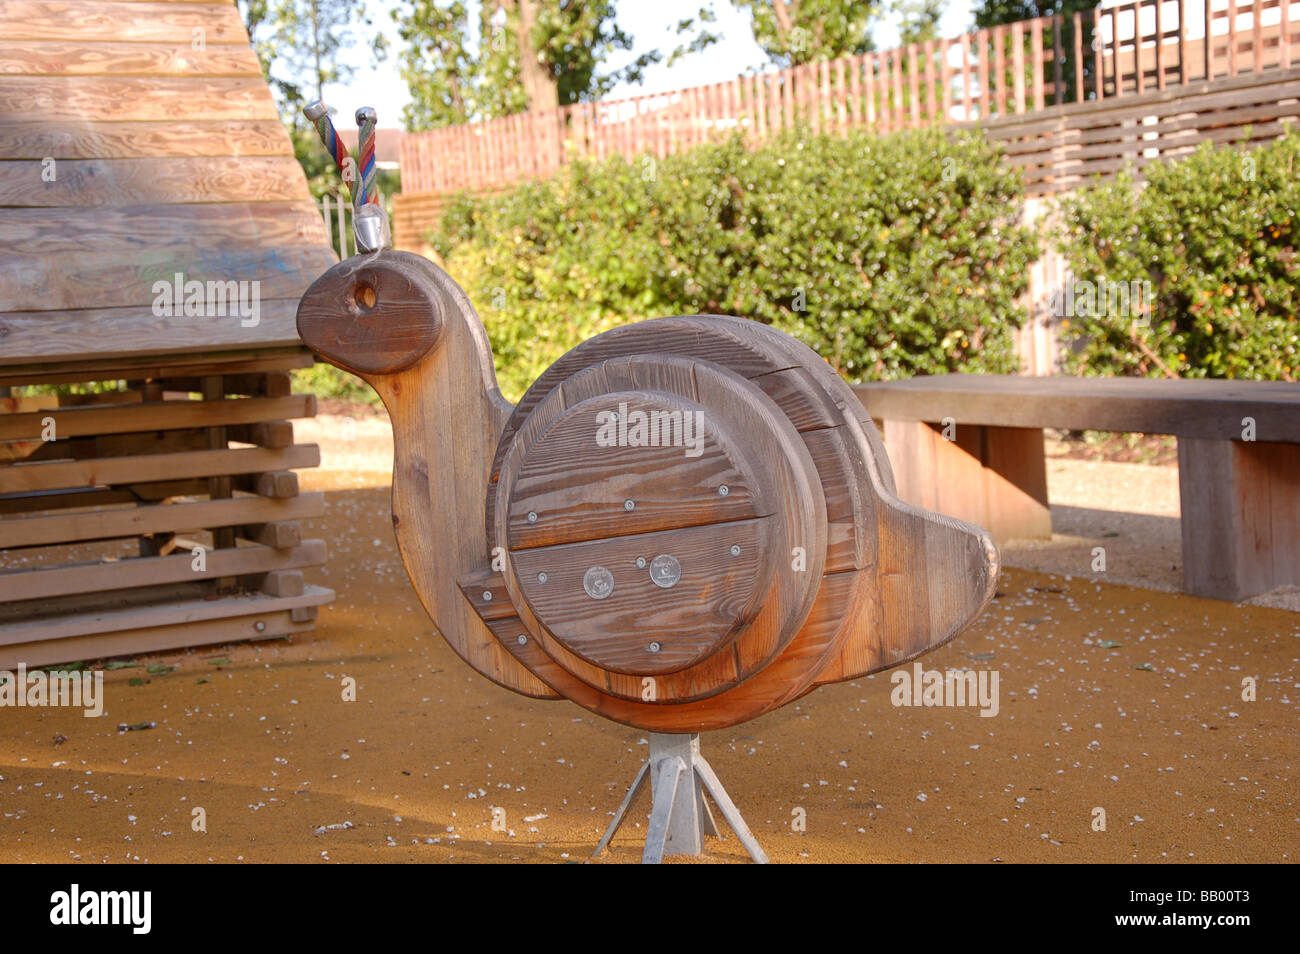 A wooden riding toy in a local children's community play ground at Colindale, London, England, Uk Stock Photo